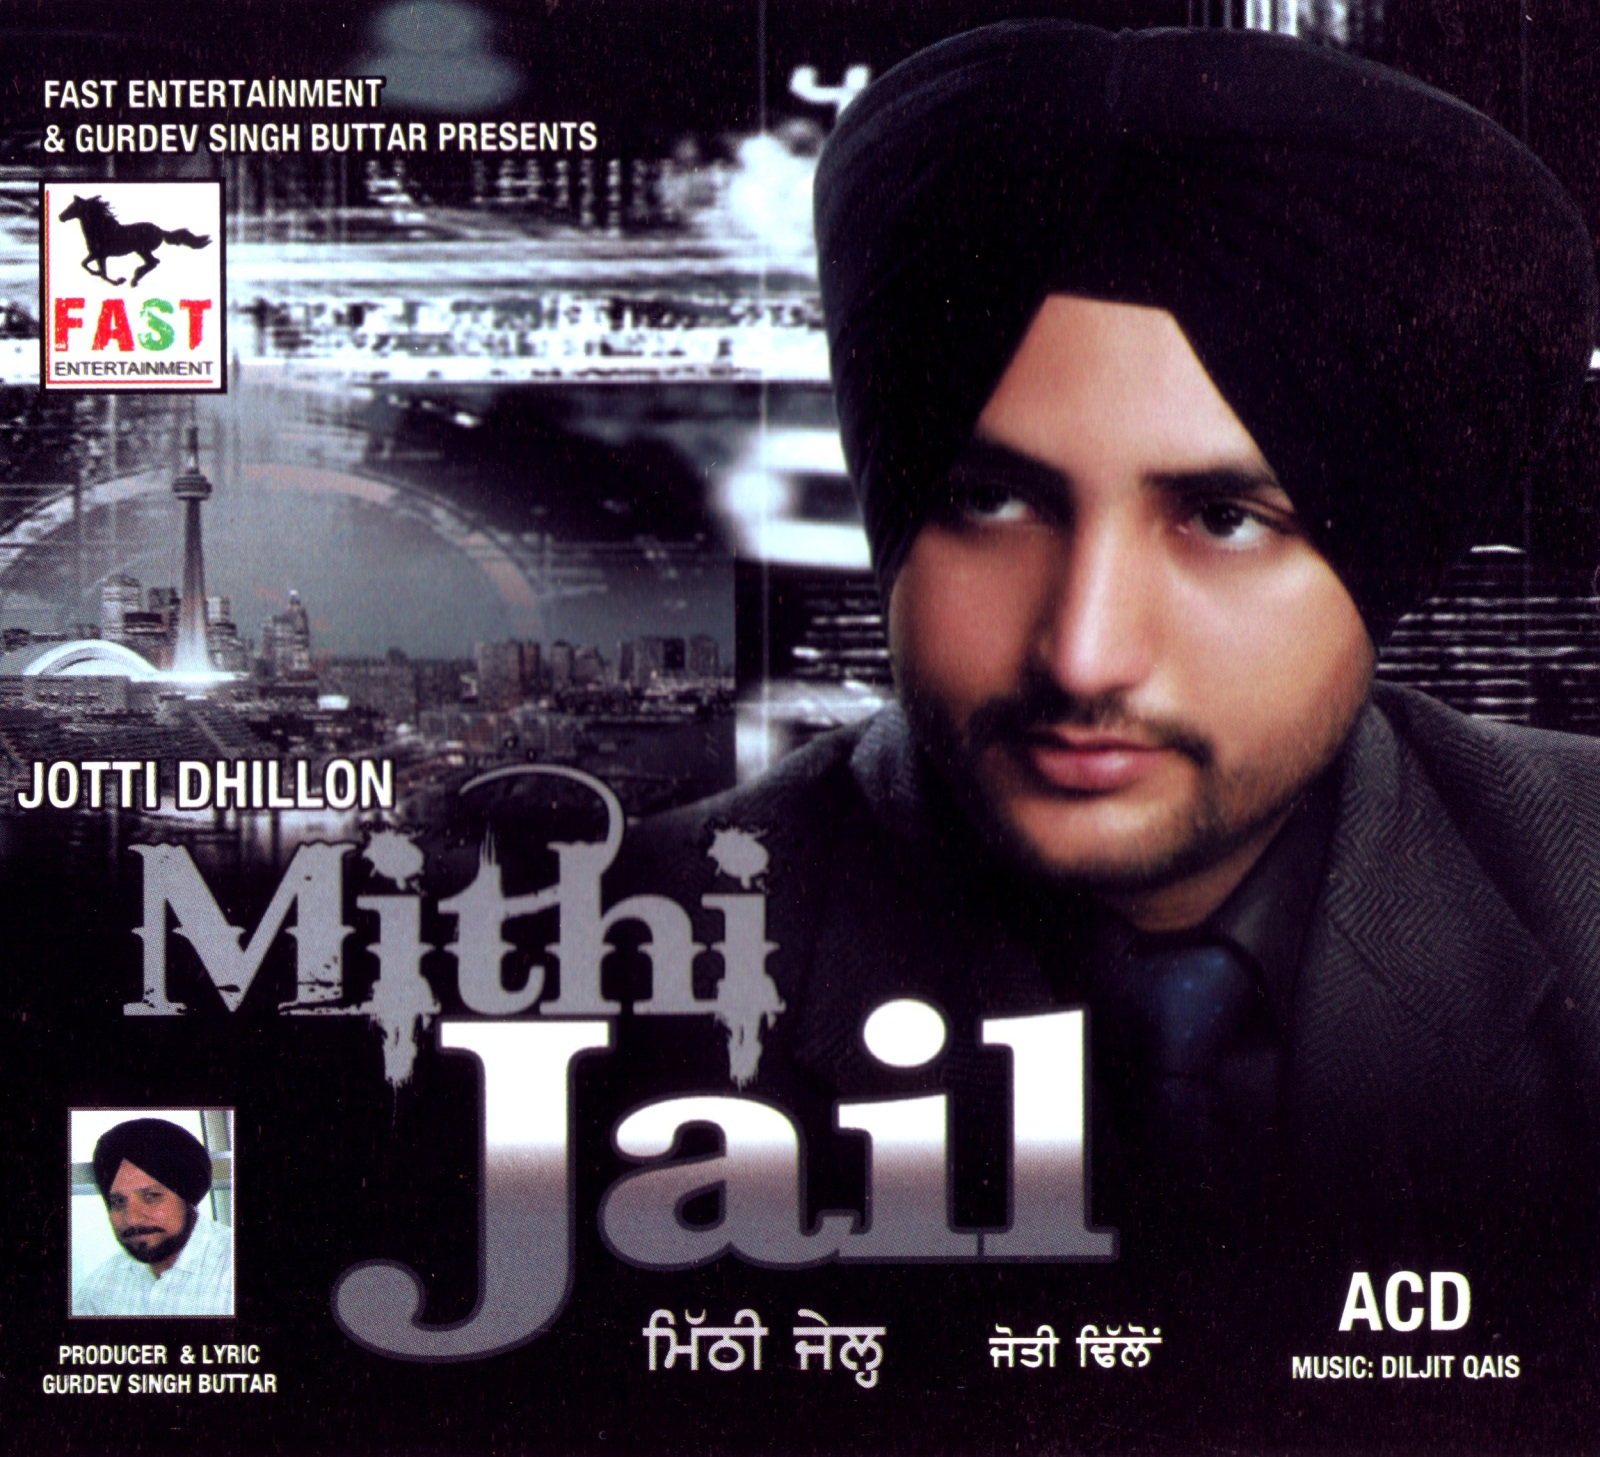 Free Download Songs Of Mithi Jail By Joti Dhillon